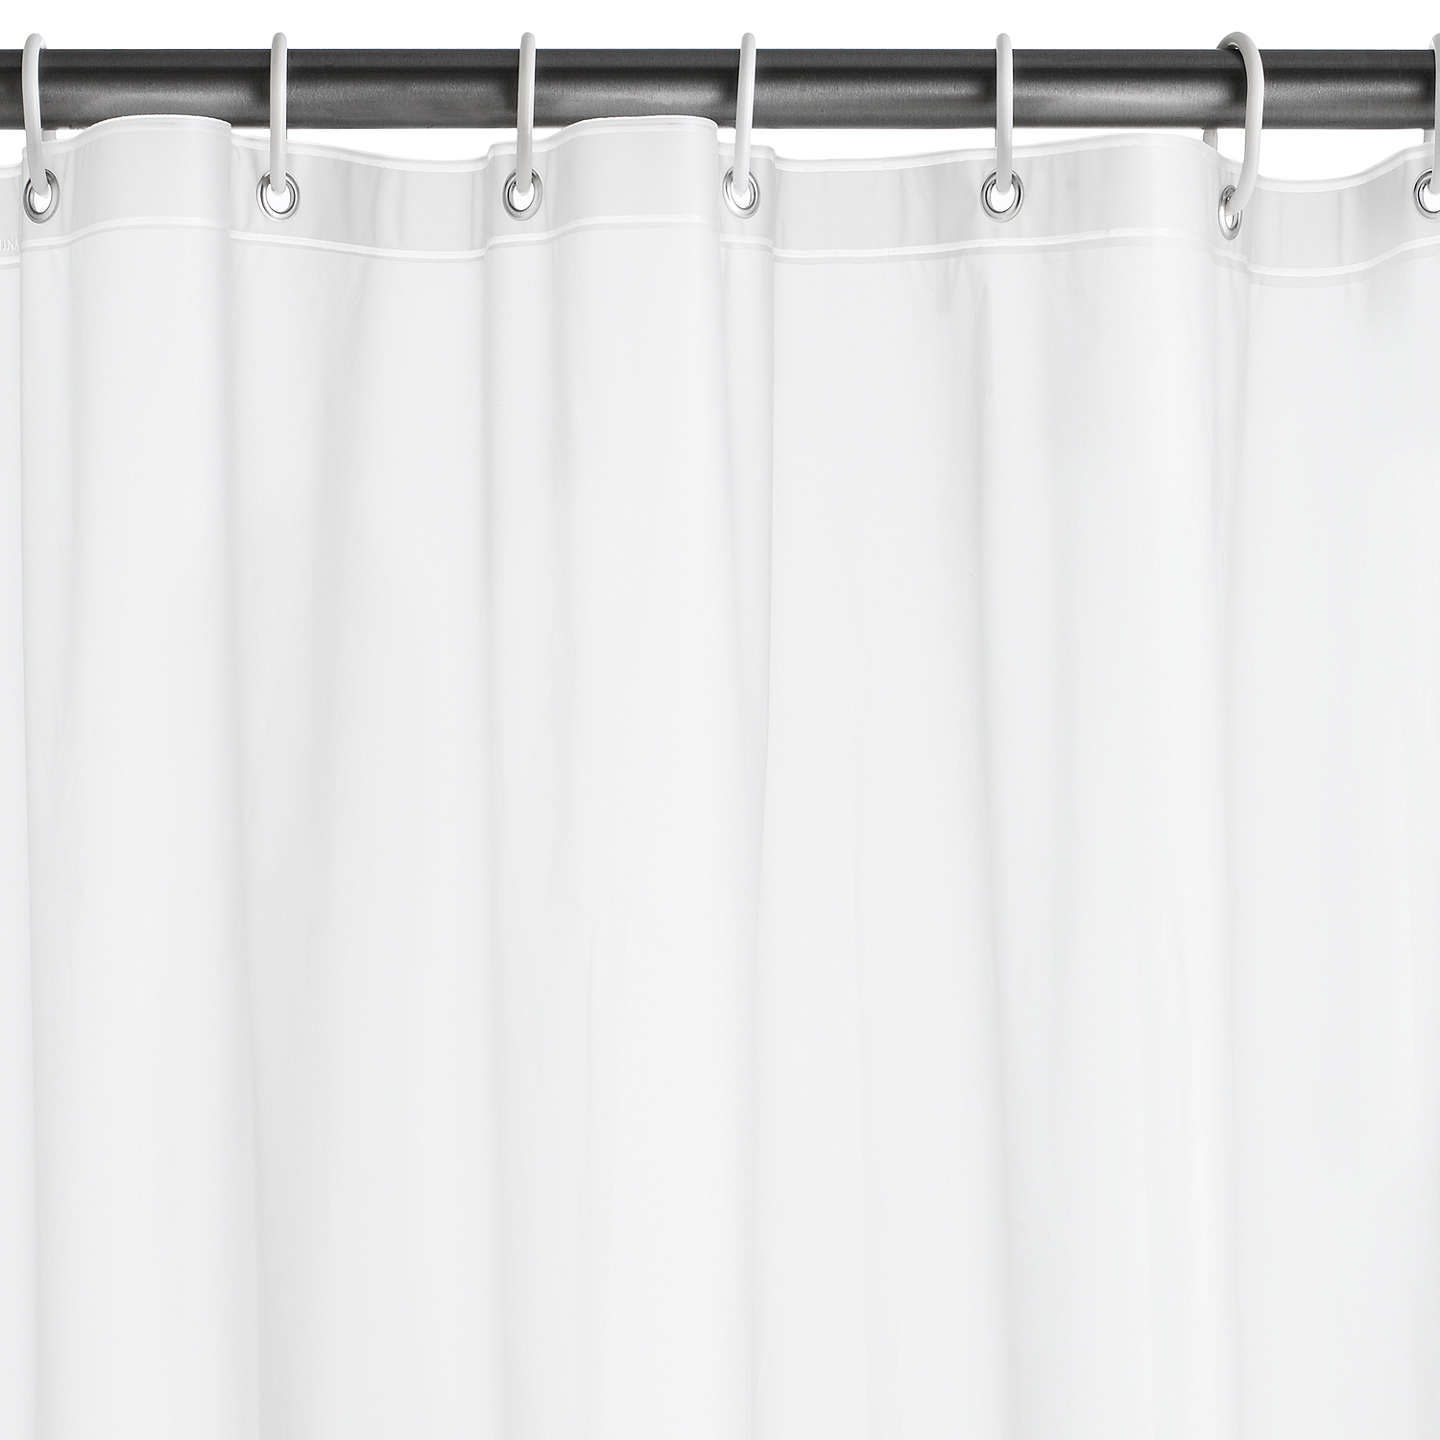 at gratograt luxury of shower home liners photos stall liner with kitchen fresh clear meijer curtain